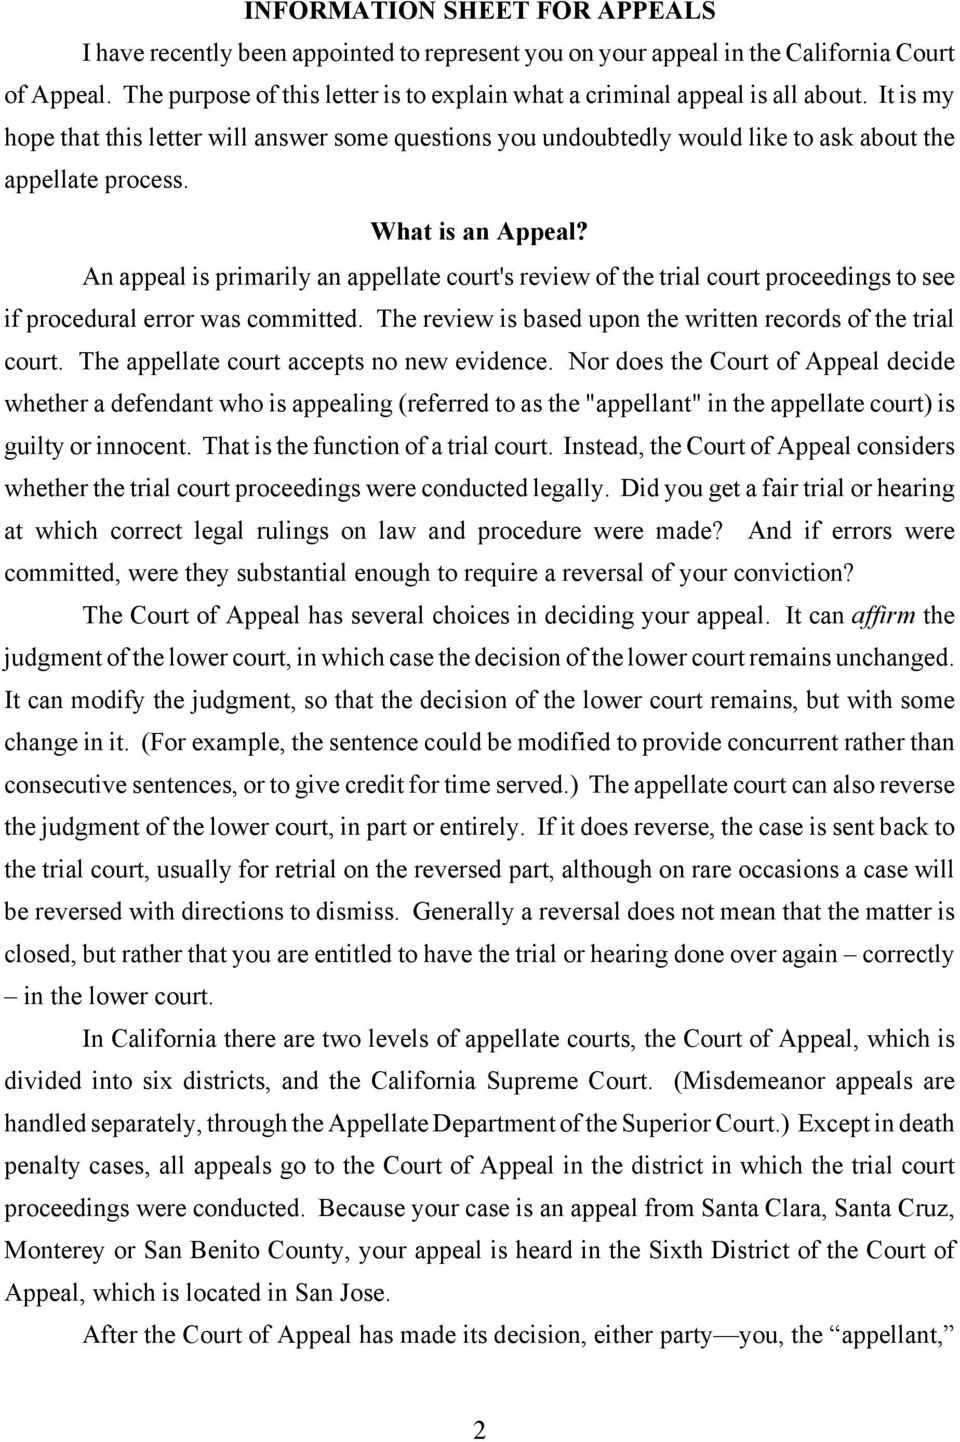 What is an Appeal? An appeal is primarily an appellate court's review of the trial court proceedings to see if procedural error was committed.